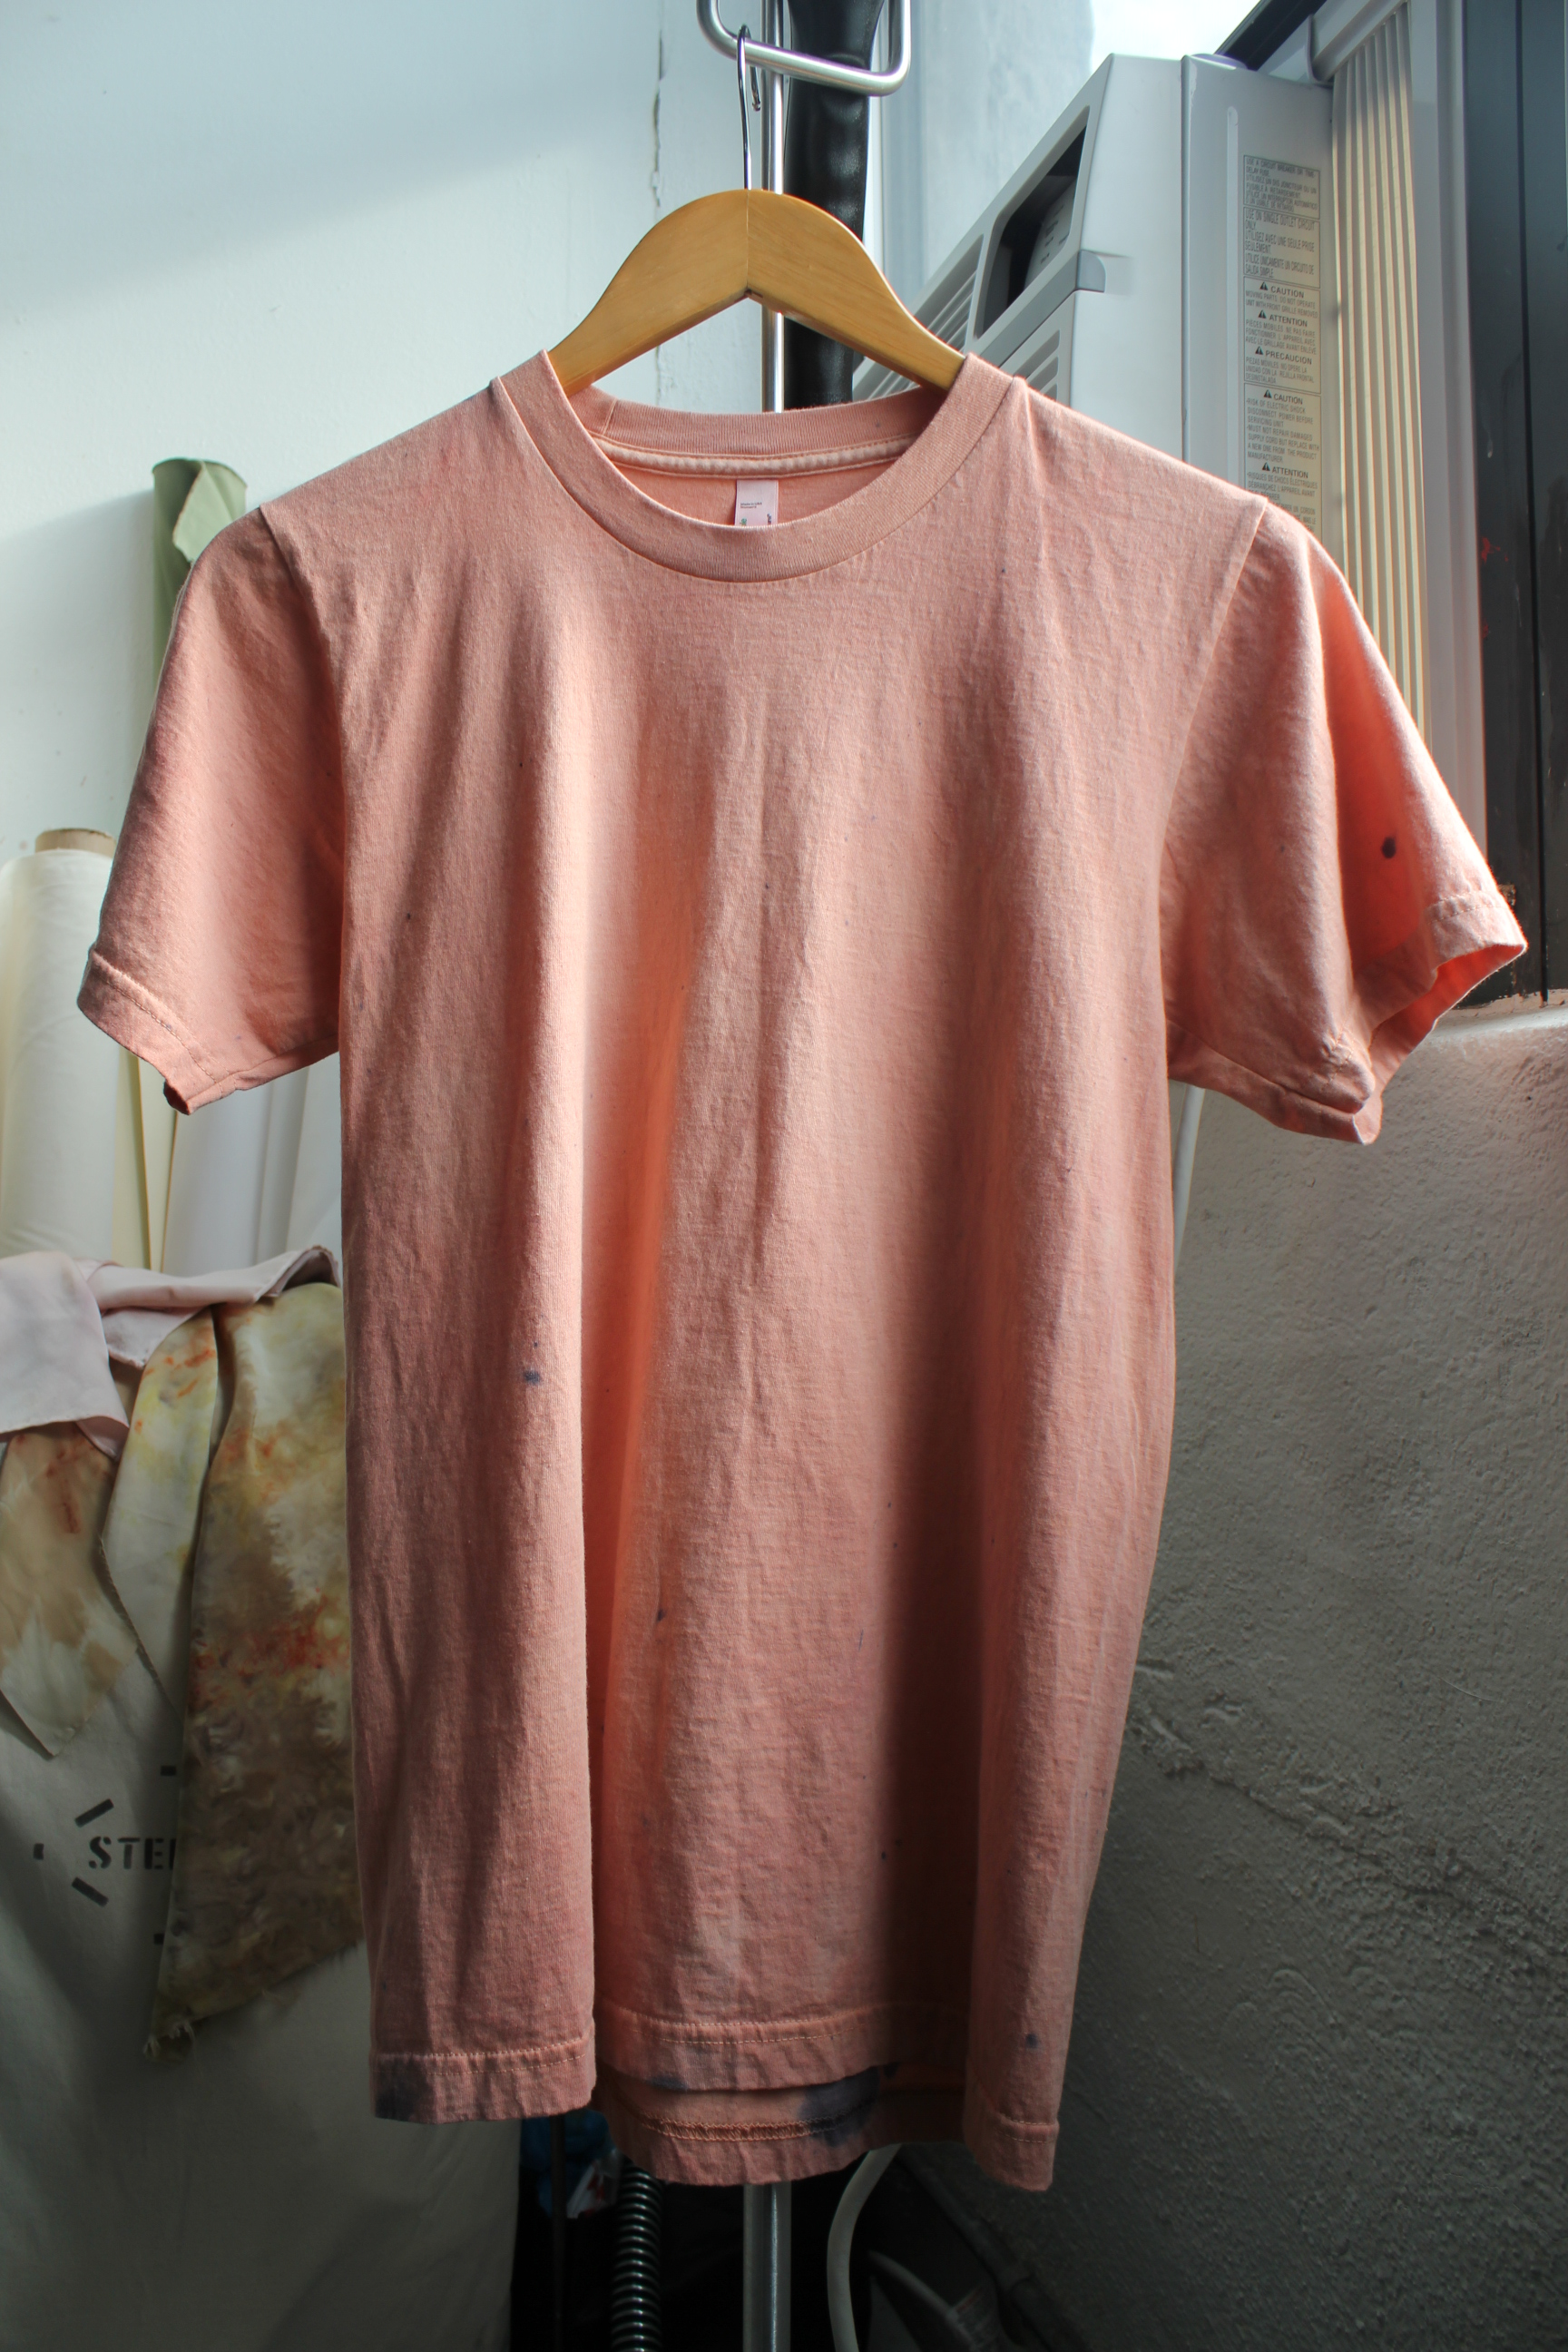 A t-shirt dyed with madder root. The spots come from iron remnants left in the dye vat.